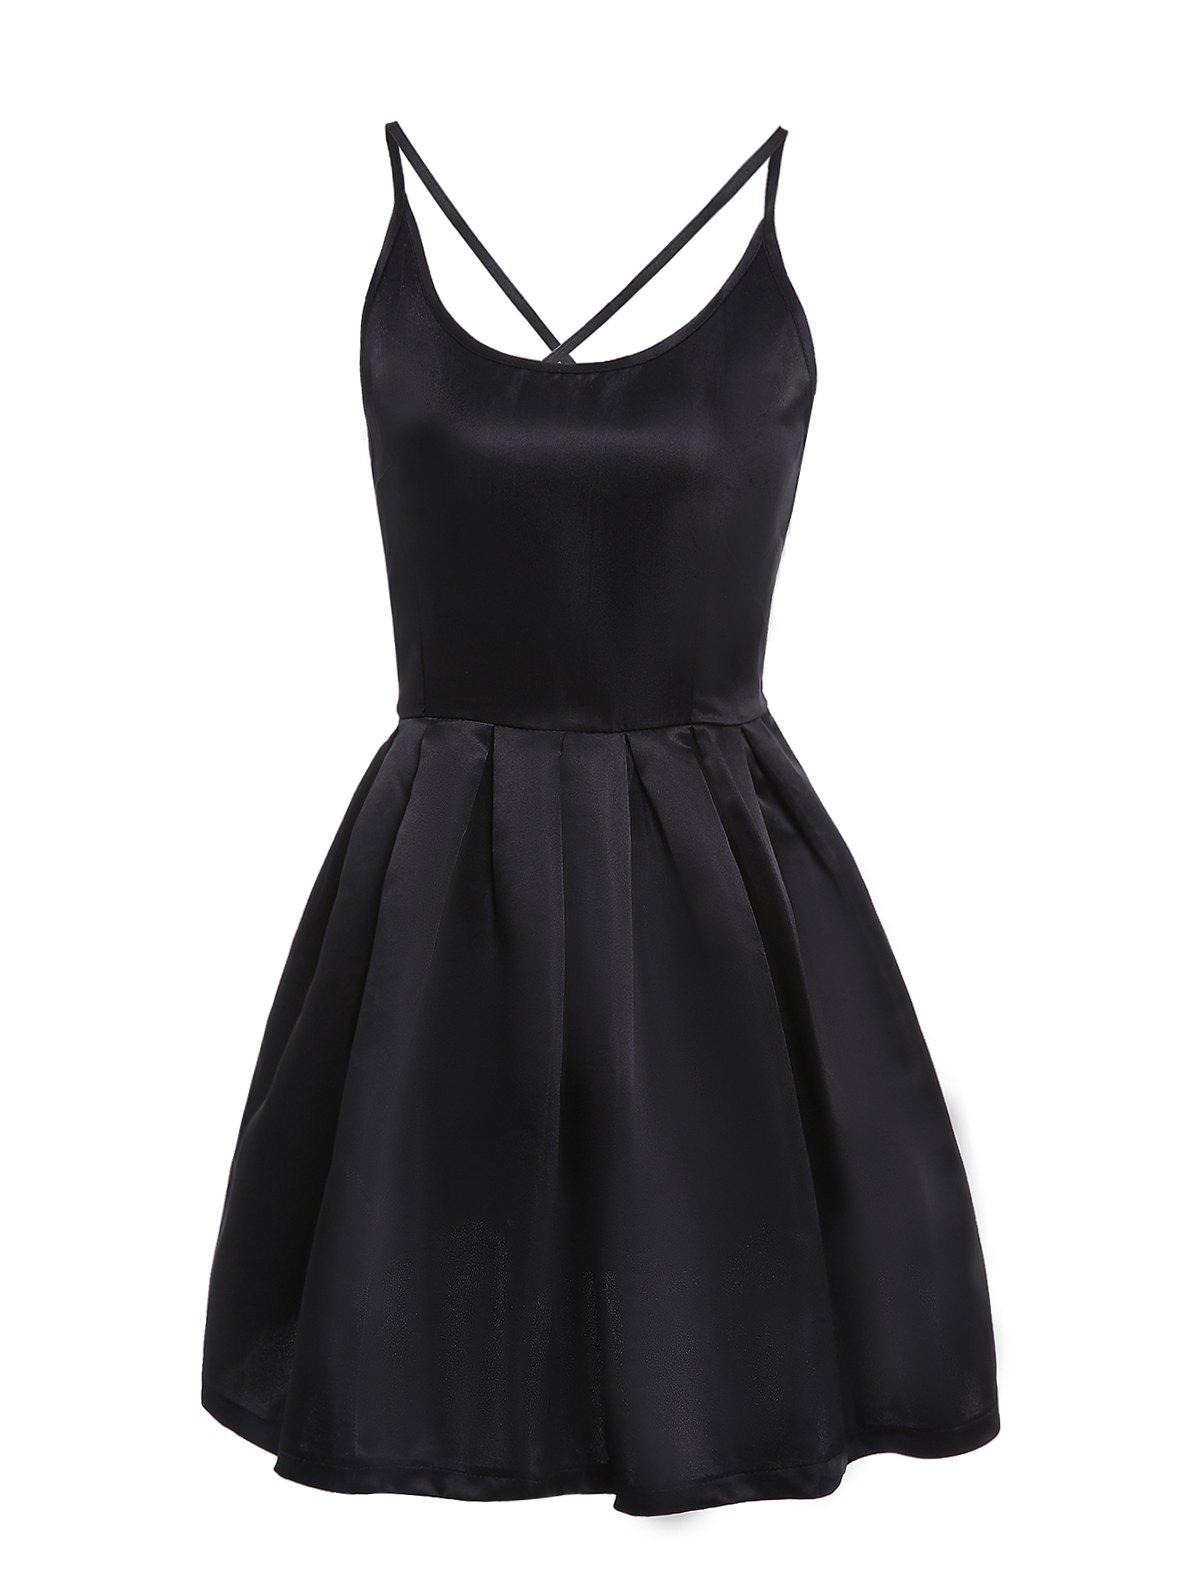 Sexy Spaghetti Strap Sleeveless Solid Color Cross-Back Low-Cut Women's Dress